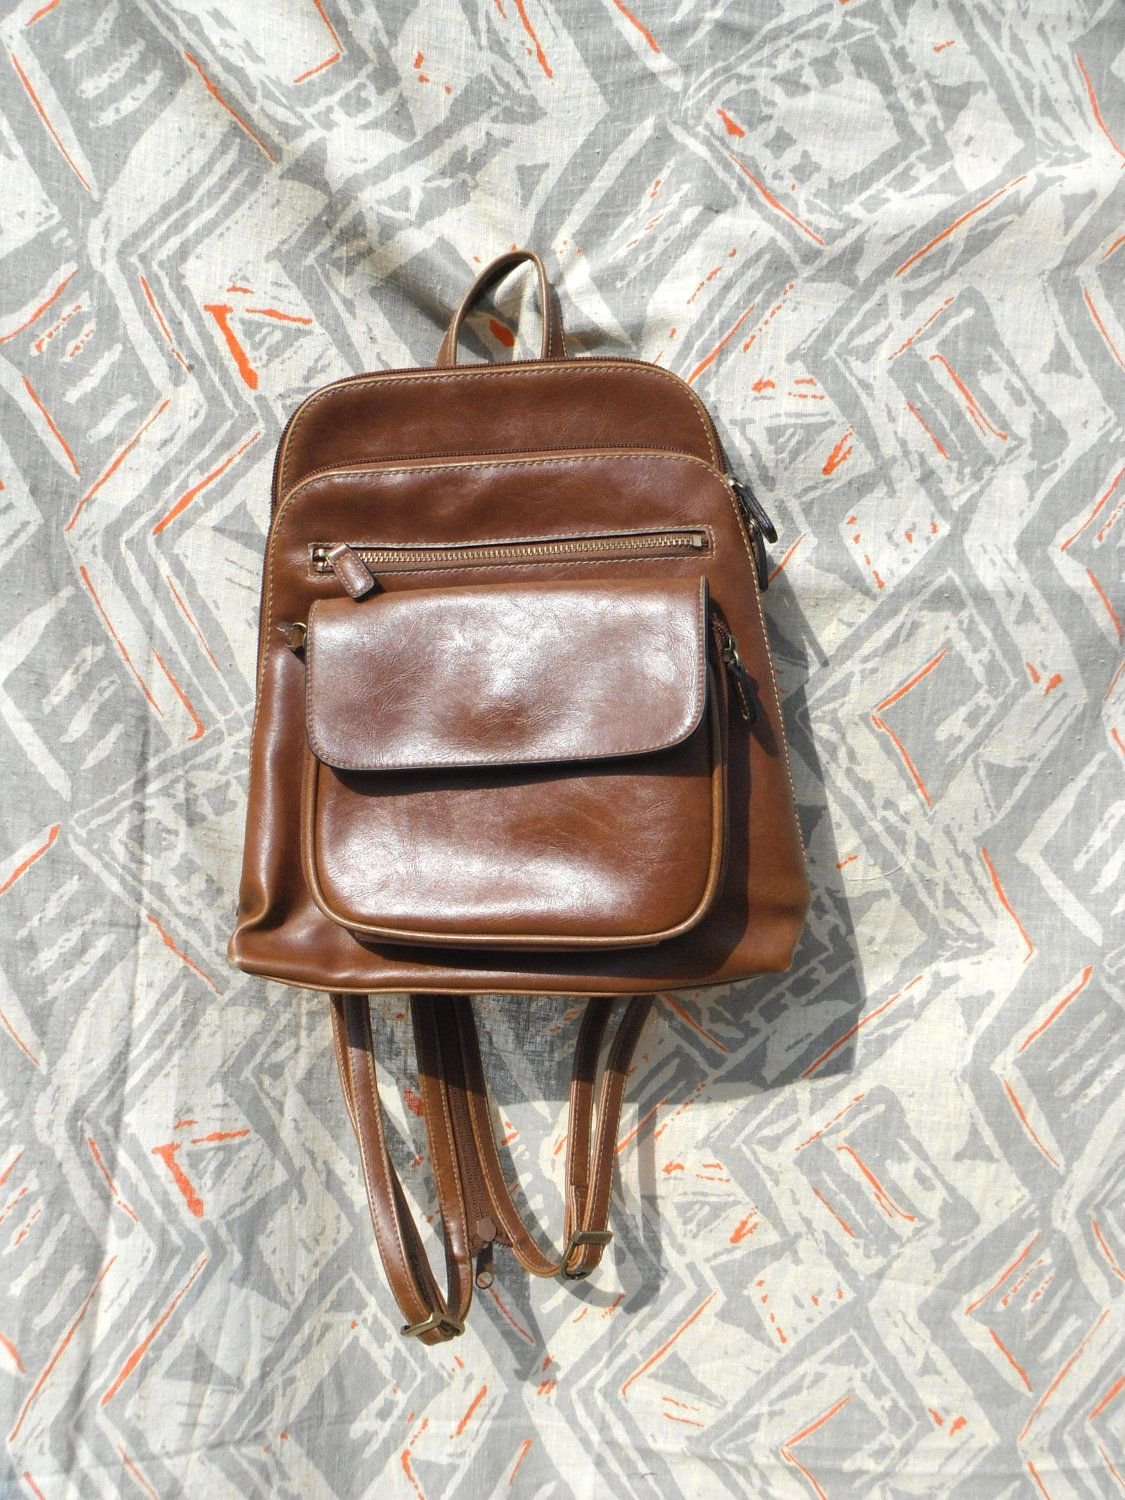 de880ffad2d1 90s mini backpack back pack brown faux leather chestnut